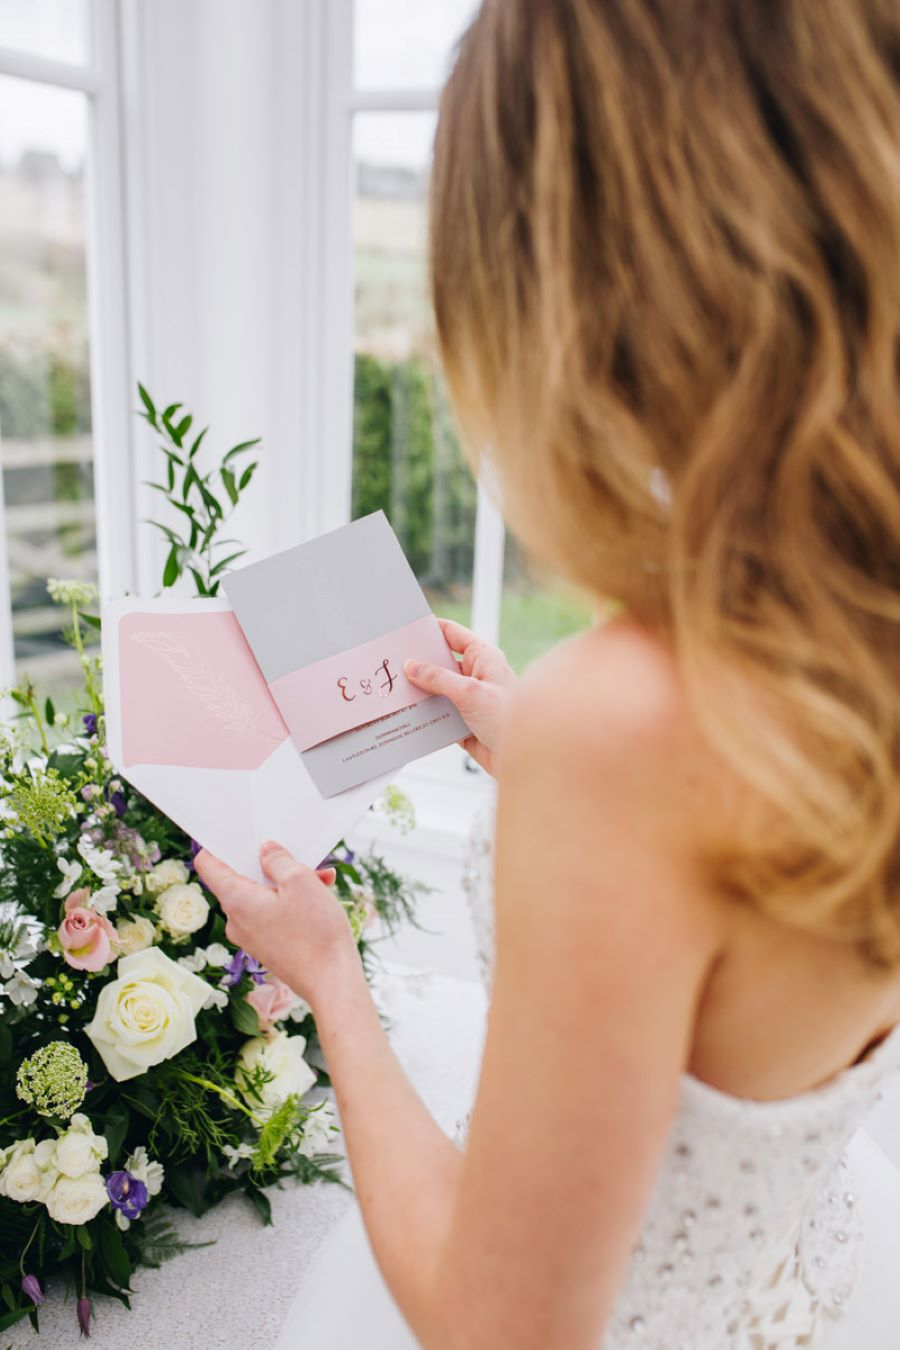 Light and romance with natural blush tones - wedding ideas from Downham Hall. Photographer credit Magical Moments Photography (41)